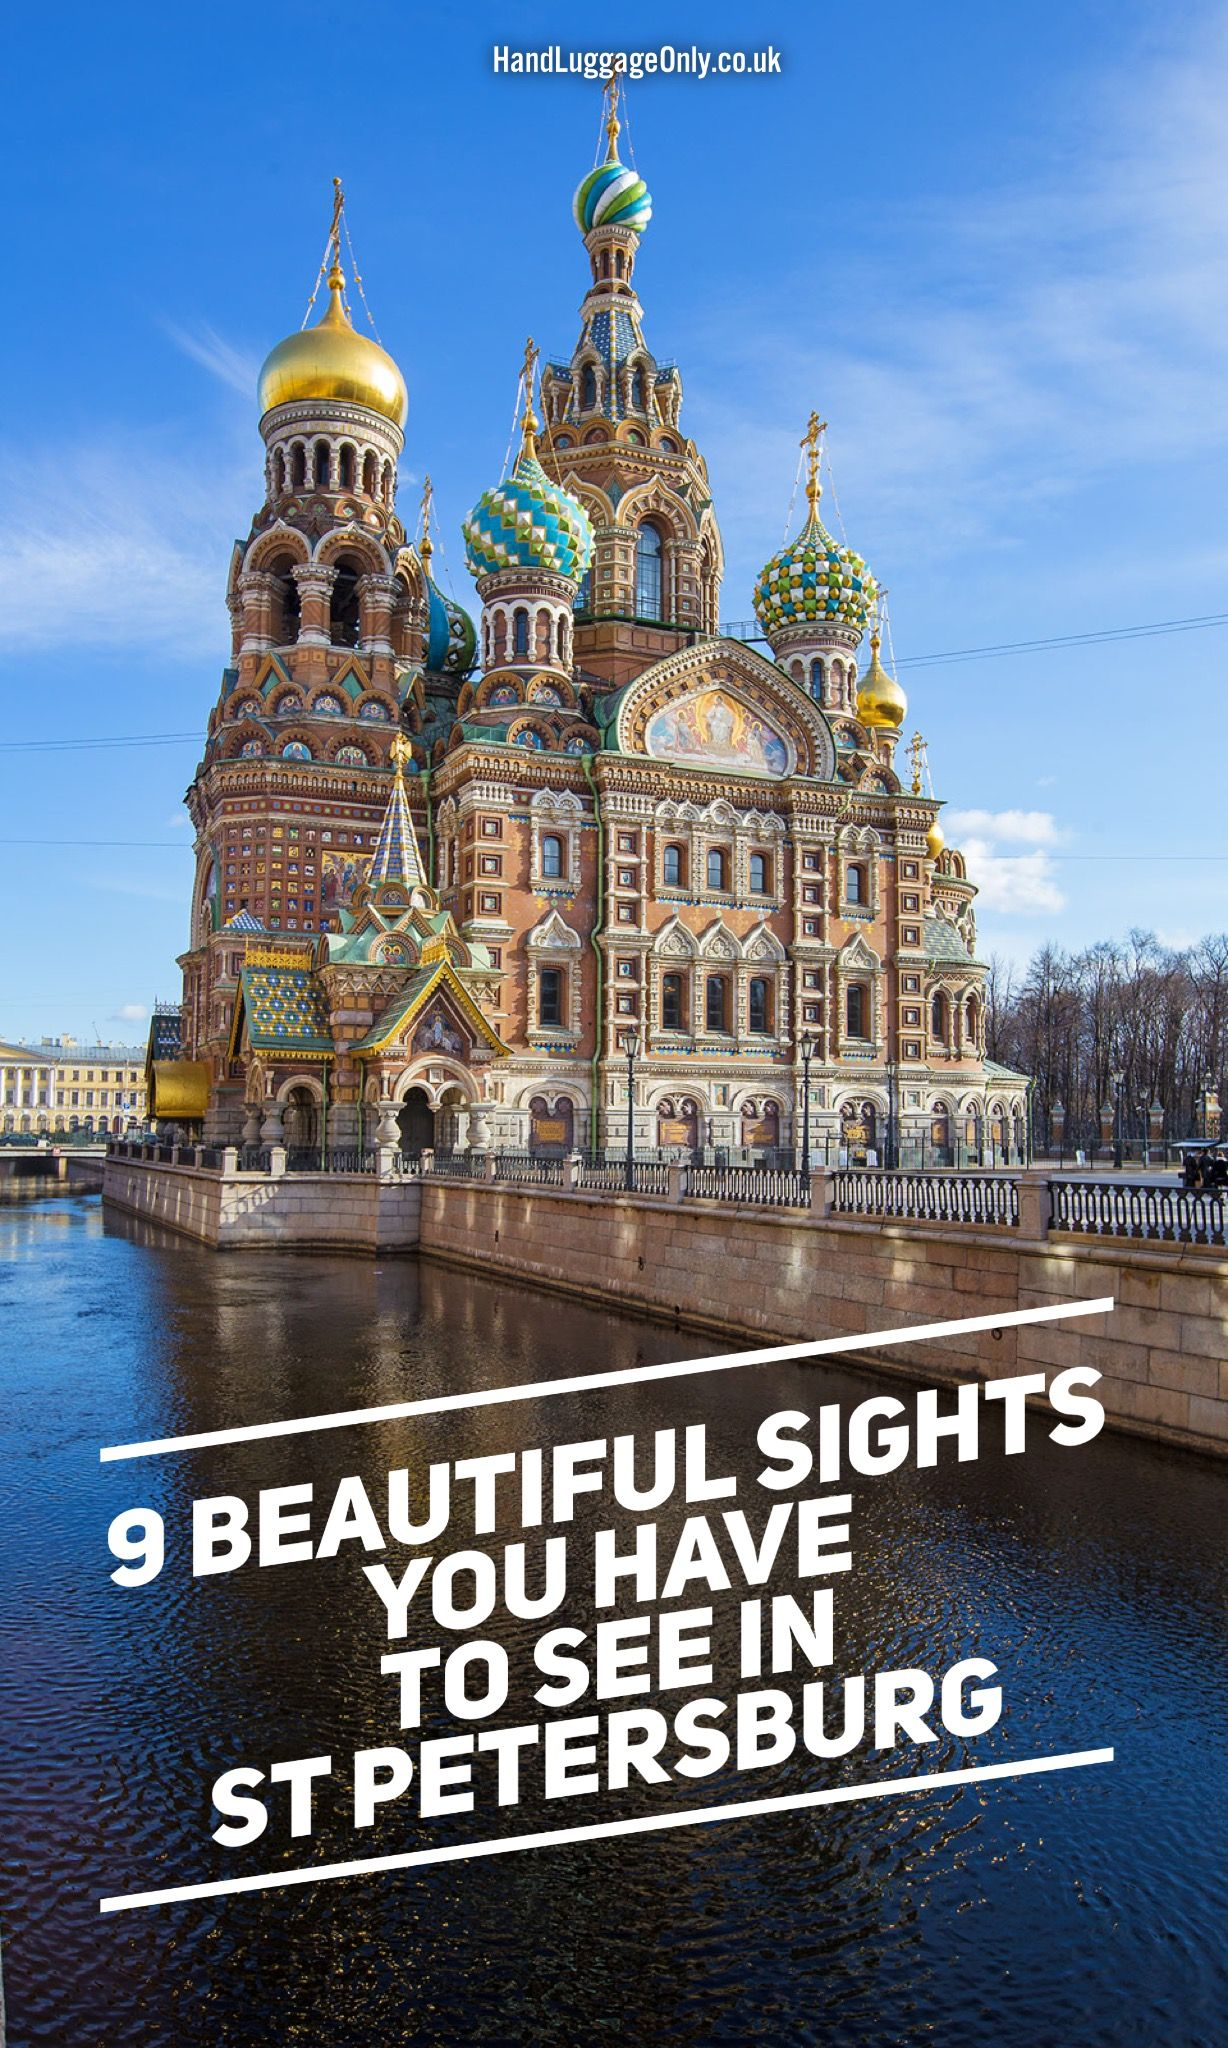 Carinas Hotels Saint Love Russia In Petersburg Milwaurkee